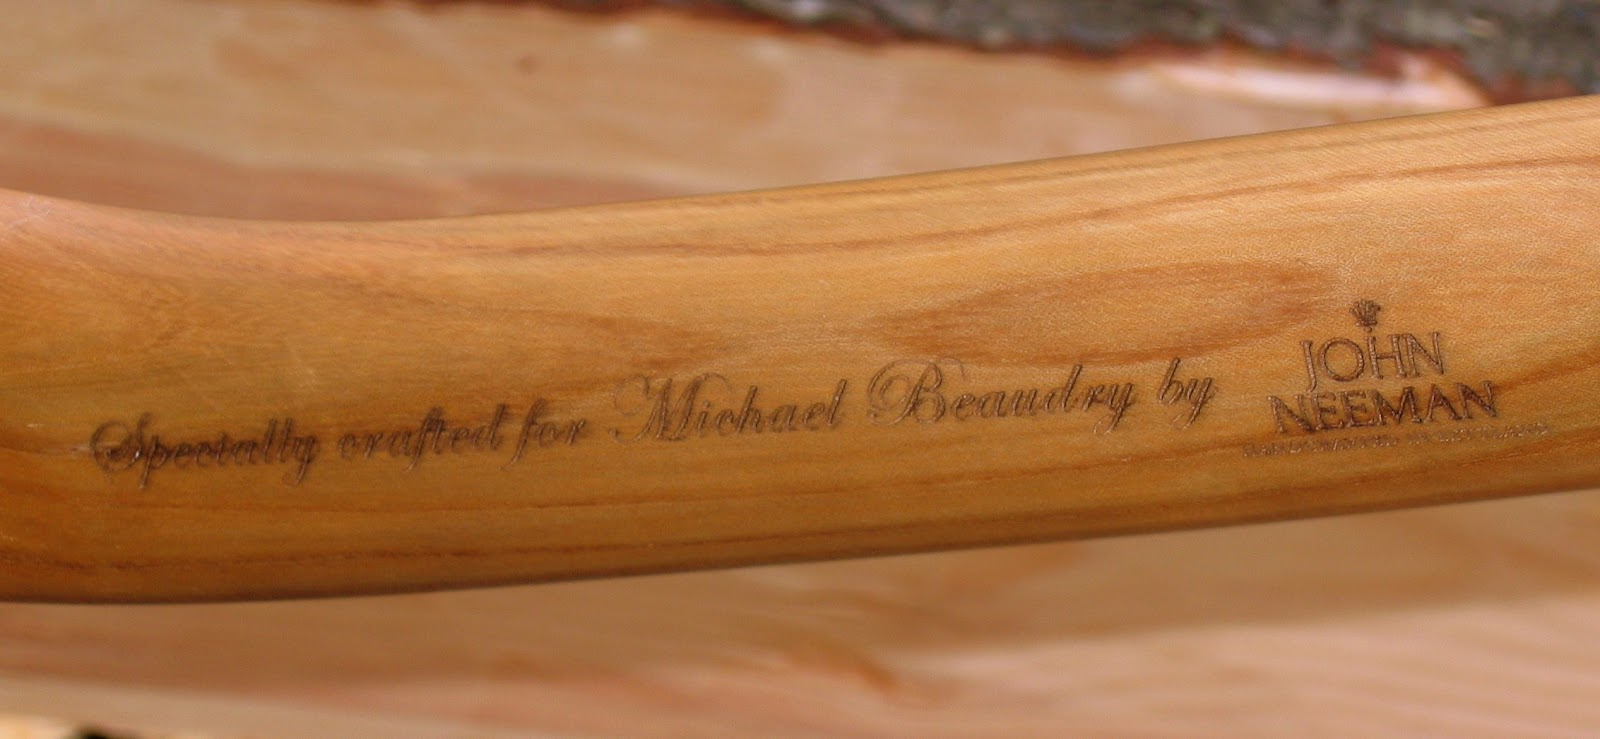 A review of the John Neeman bearded axe | Mud Pond Hewing